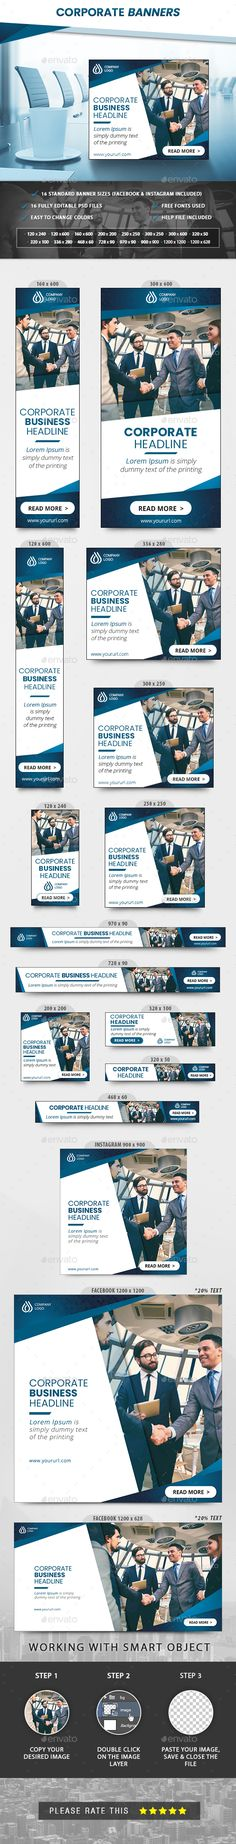 Corporate Banners - Banners & Ads Web Elements Social Networks, Social Media, Website Promotion, Online Campaign, Vector Shapes, Promote Your Business, Banner Template, Facebook Instagram, Ads